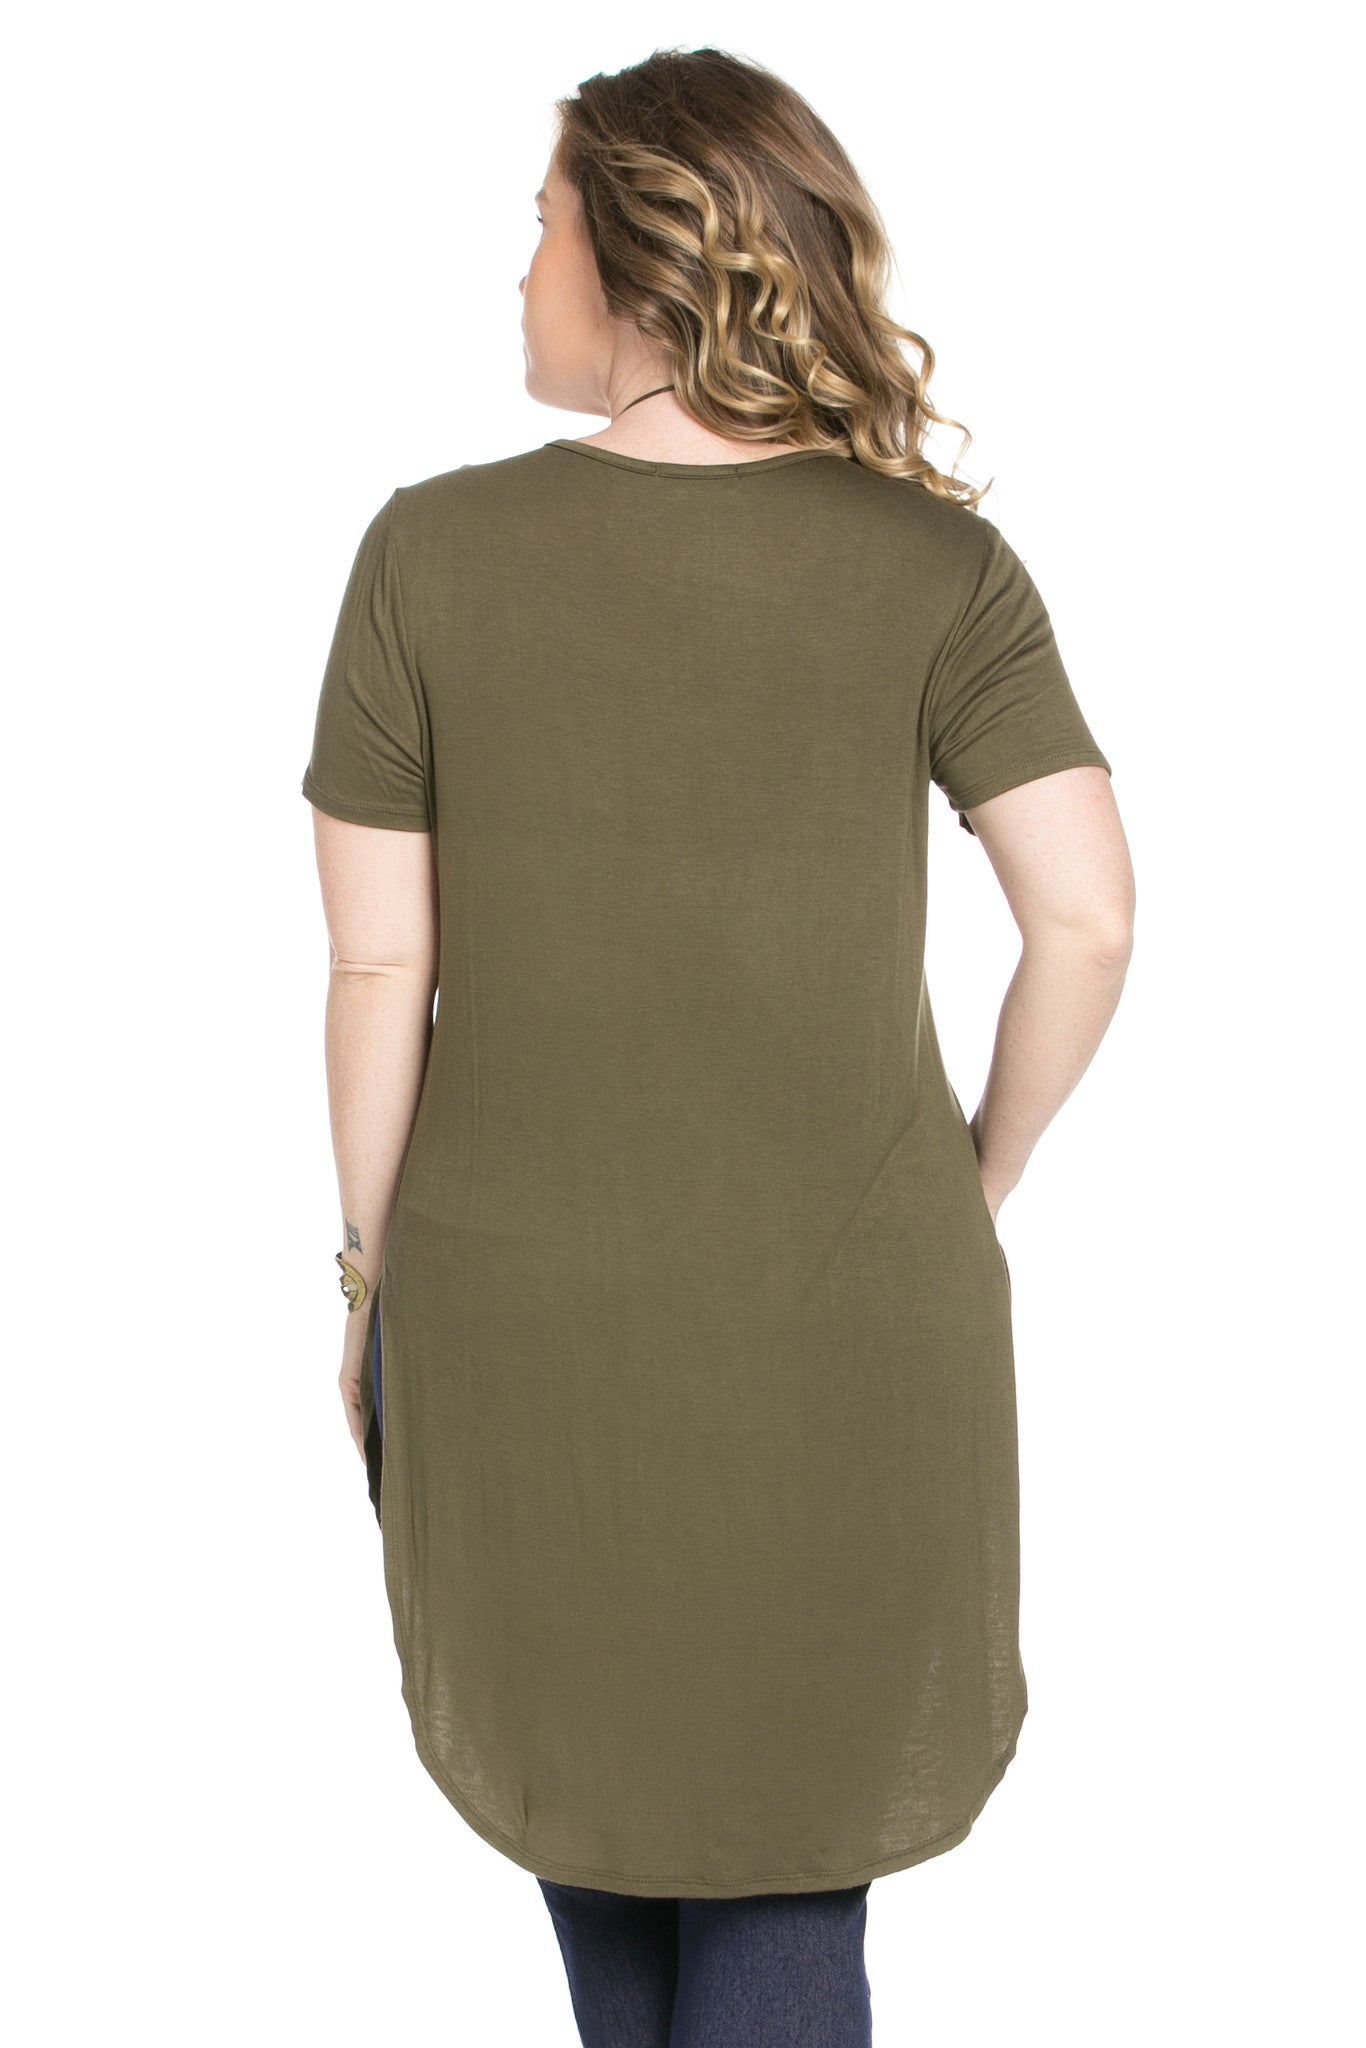 Casual High Low Olive V-Neck T-Blouse - Blouses - My Yuccie - 4